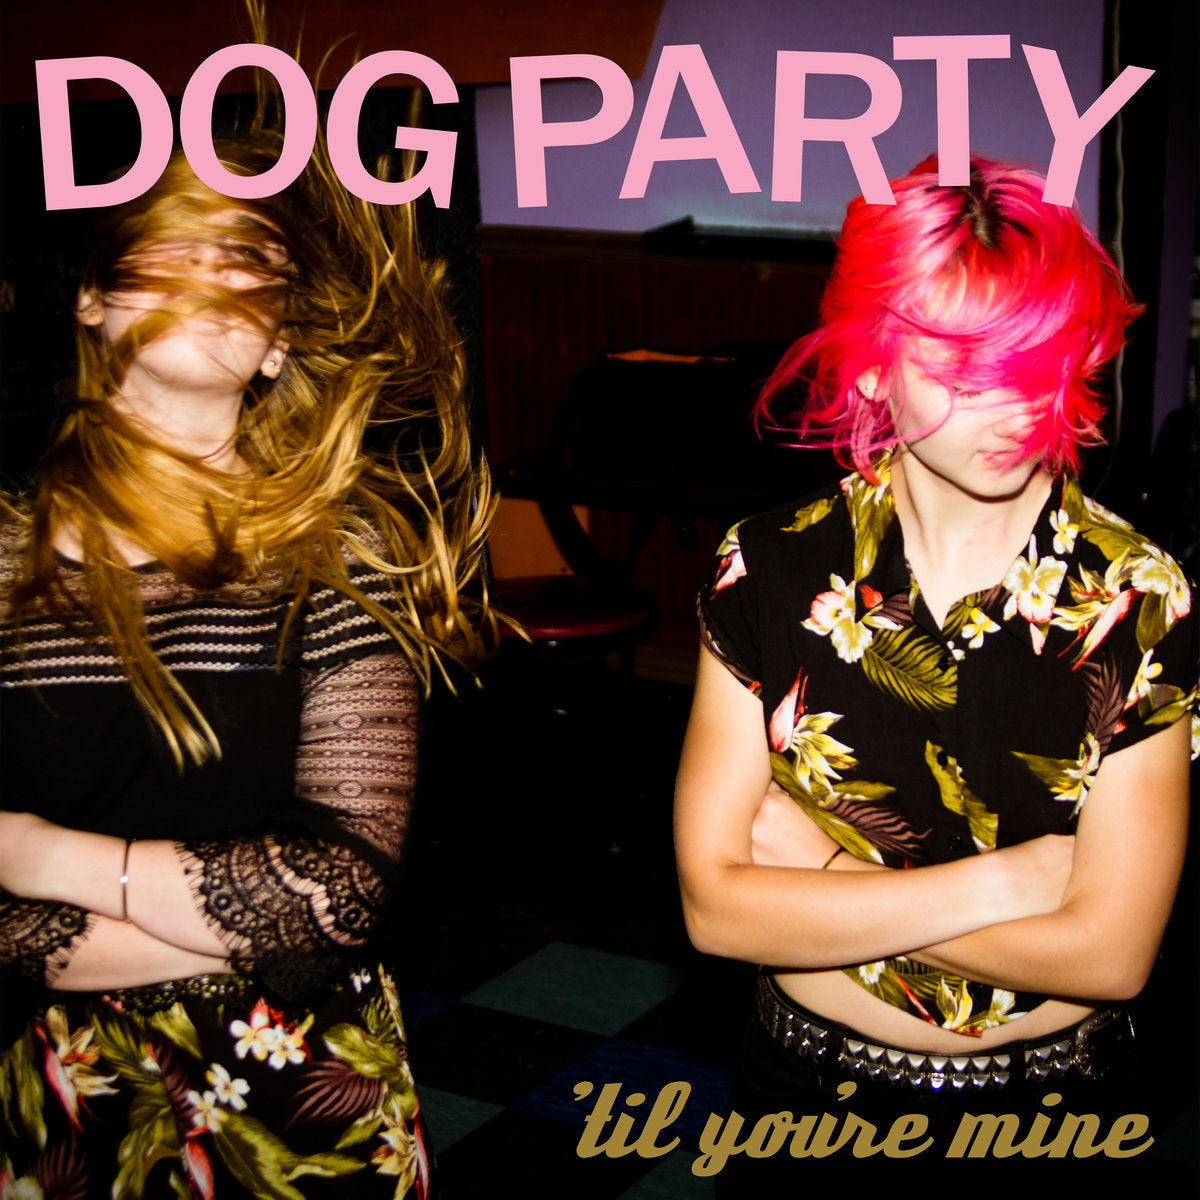 Dog Party - Til You're Mine LP - Vinyl